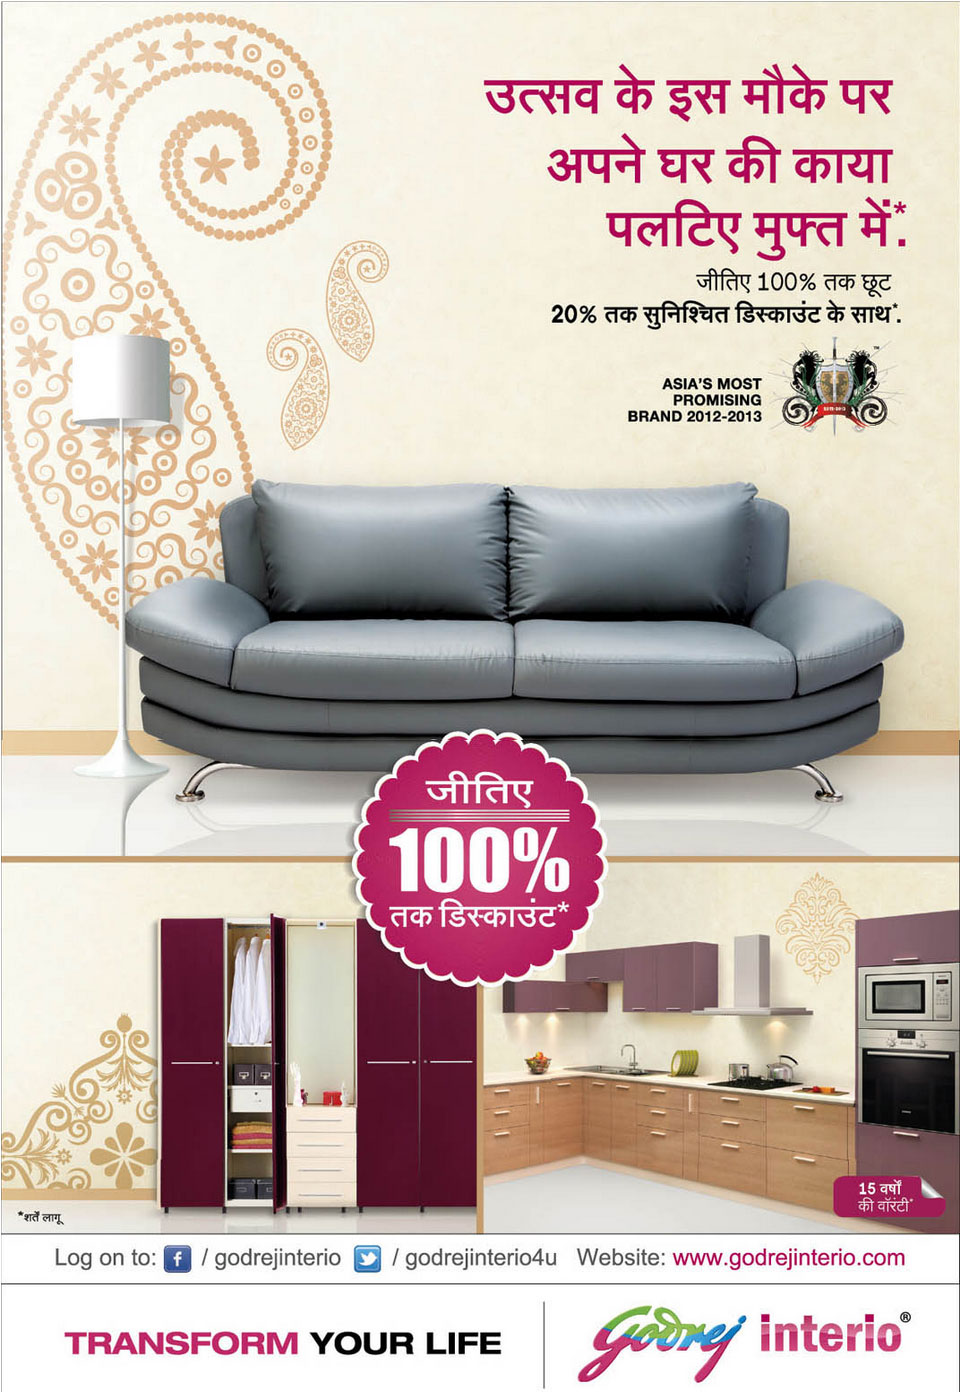 godrej interio offers 100 discount on their products sagmart